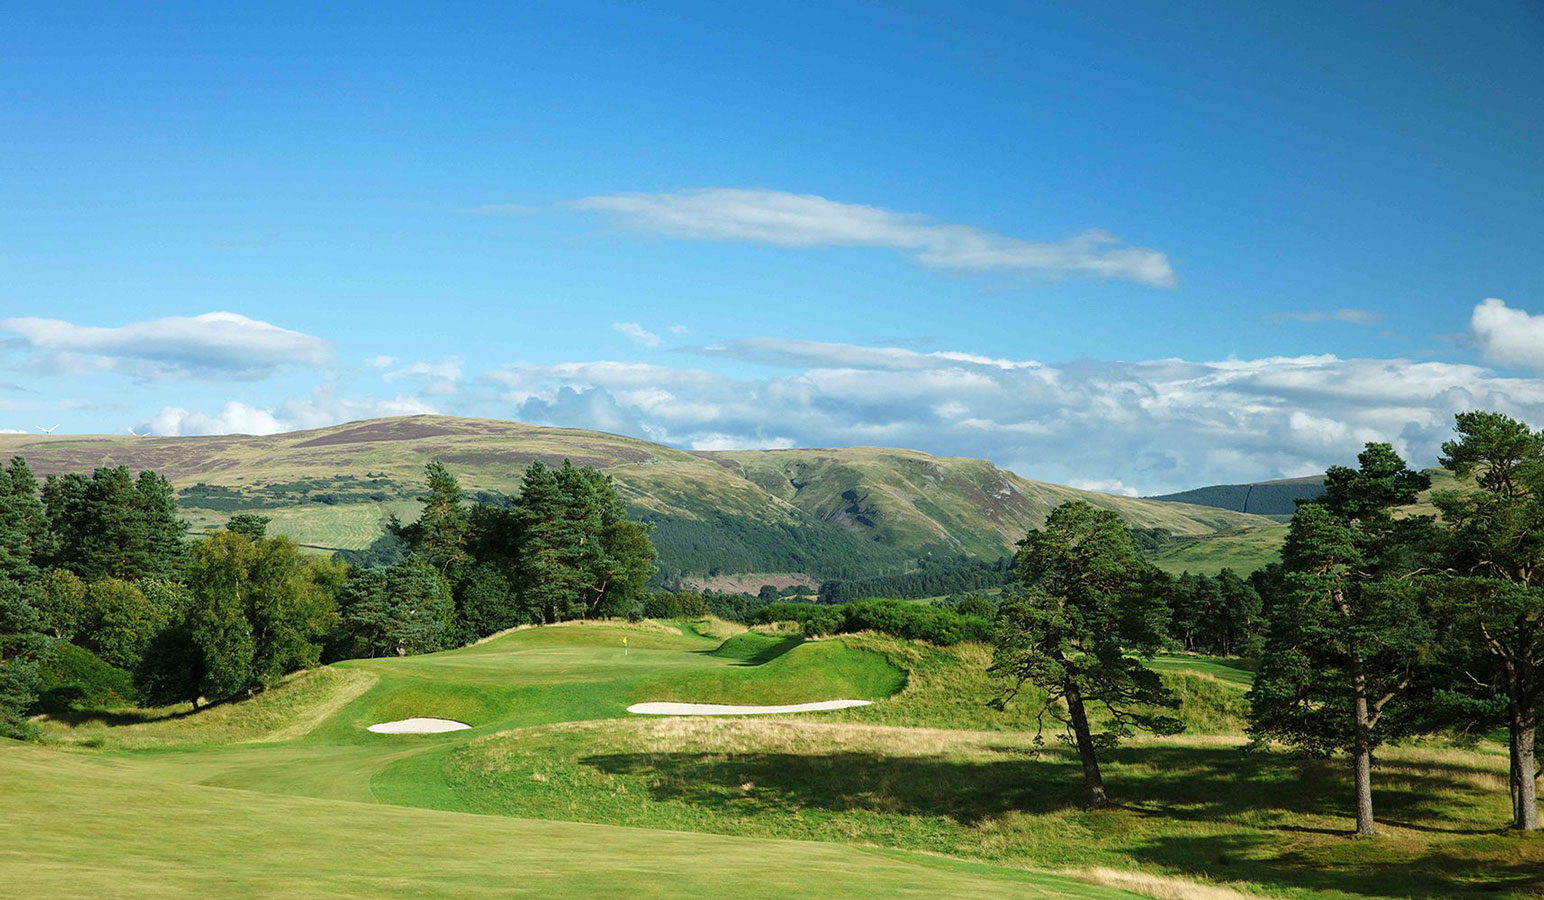 A view of the Gleneagles golf courses on a blue sky day with the Ochil Hills in the background